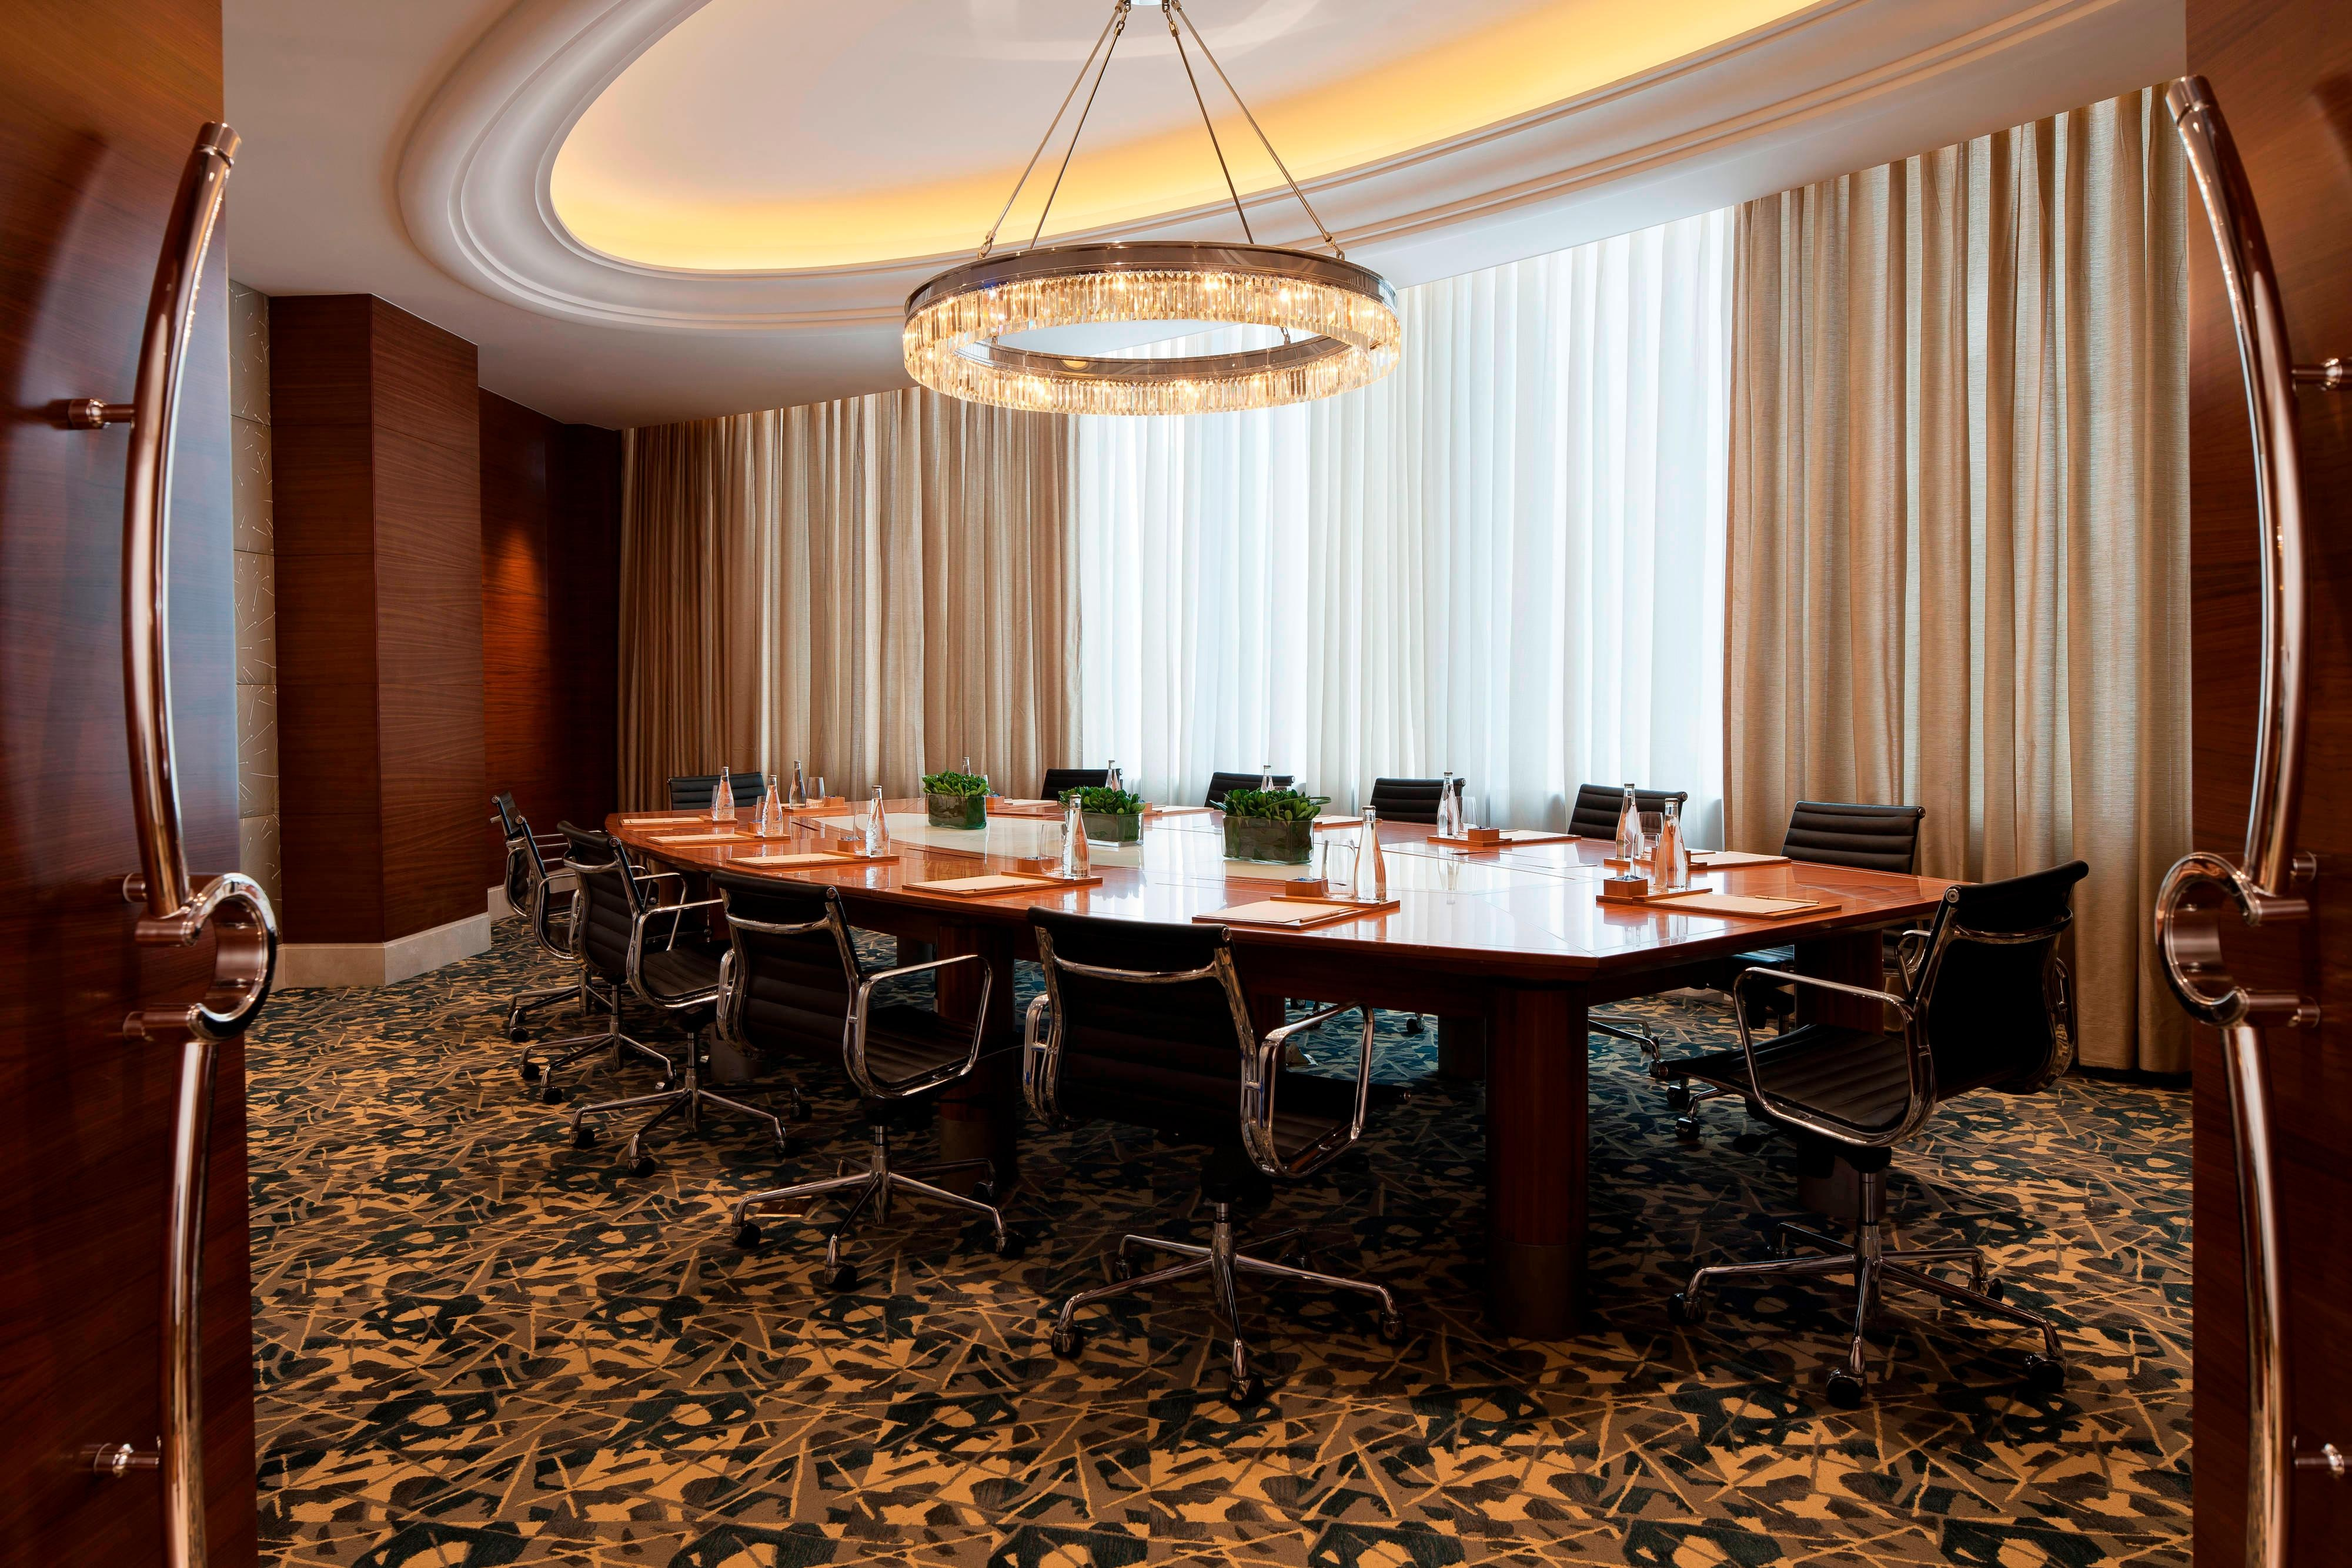 Shanghai business hotel boardroom